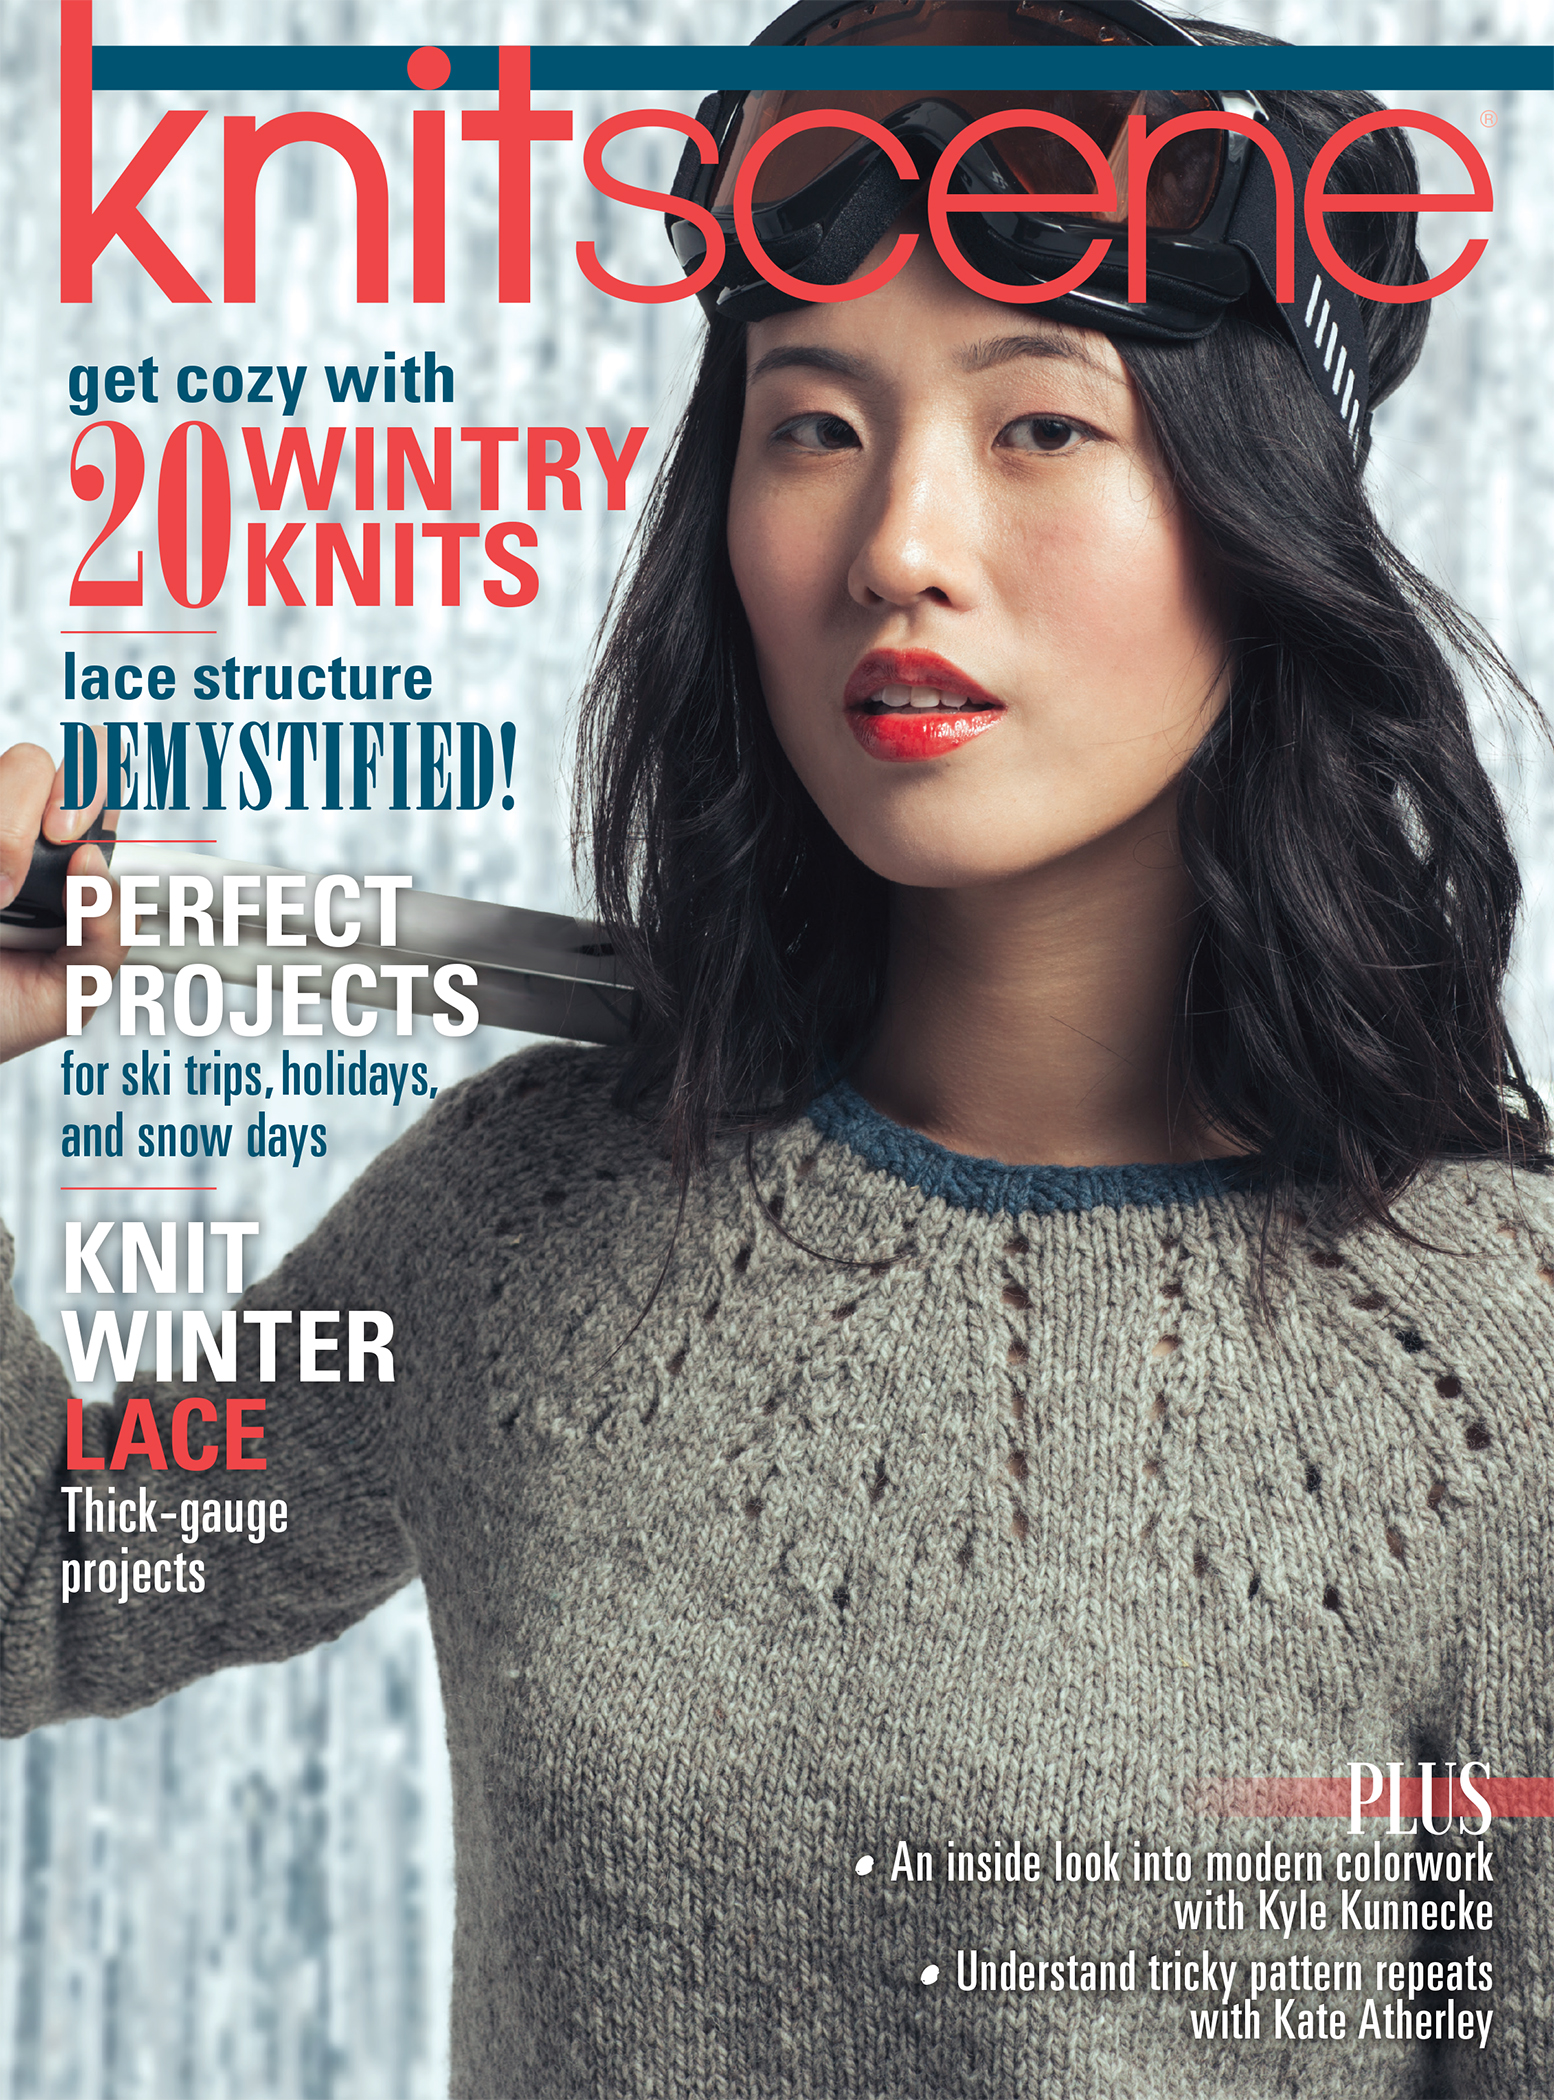 knitscene Winter 2016 cover